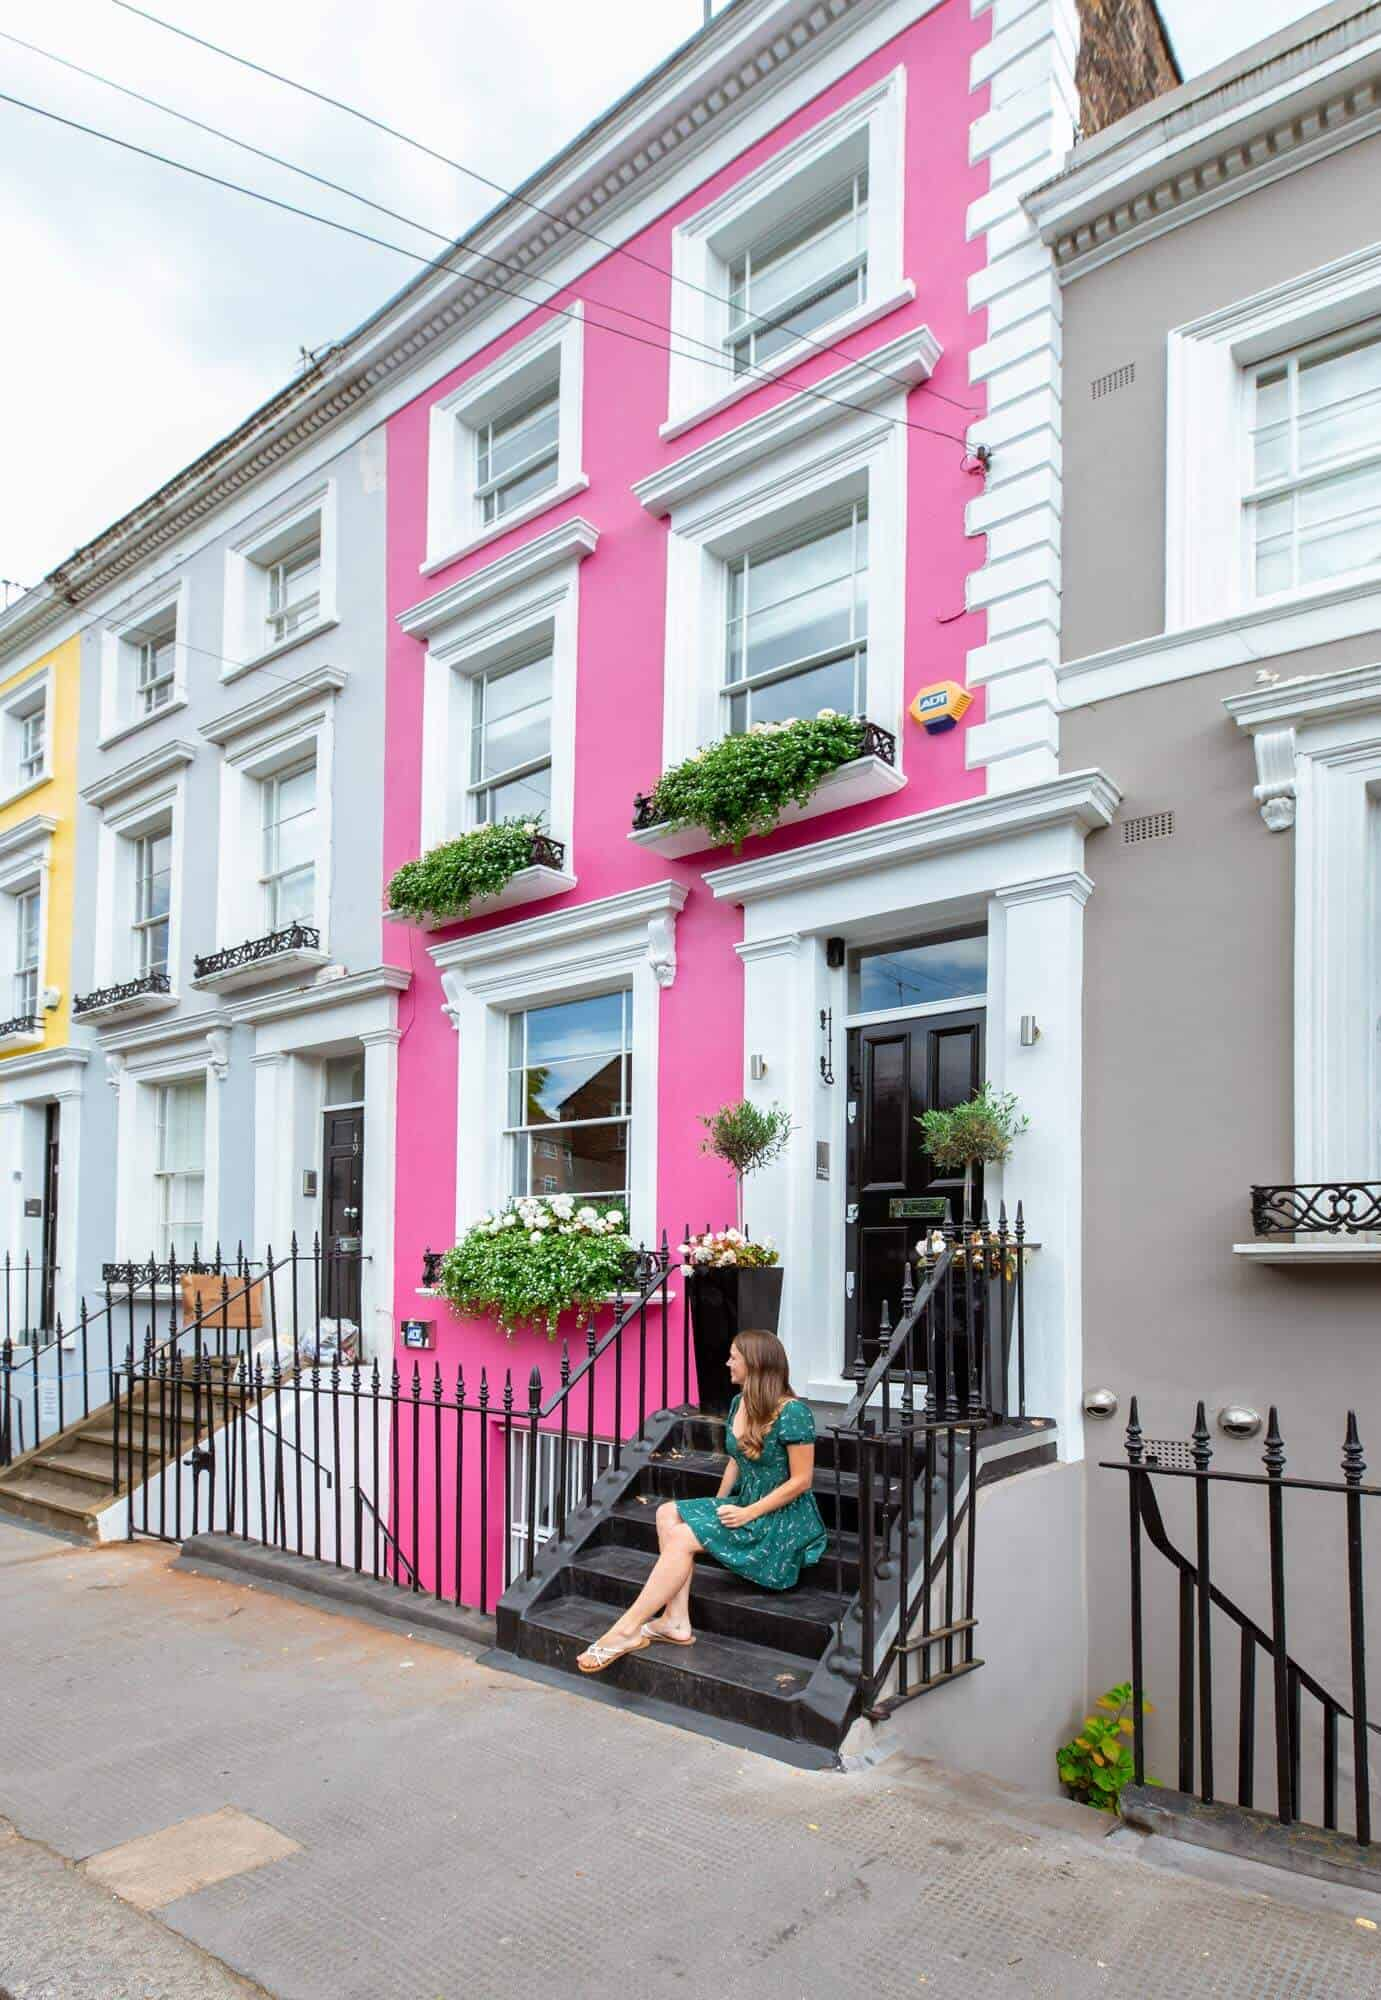 Colourful houses on Denbigh Terrace, Notting Hill, London